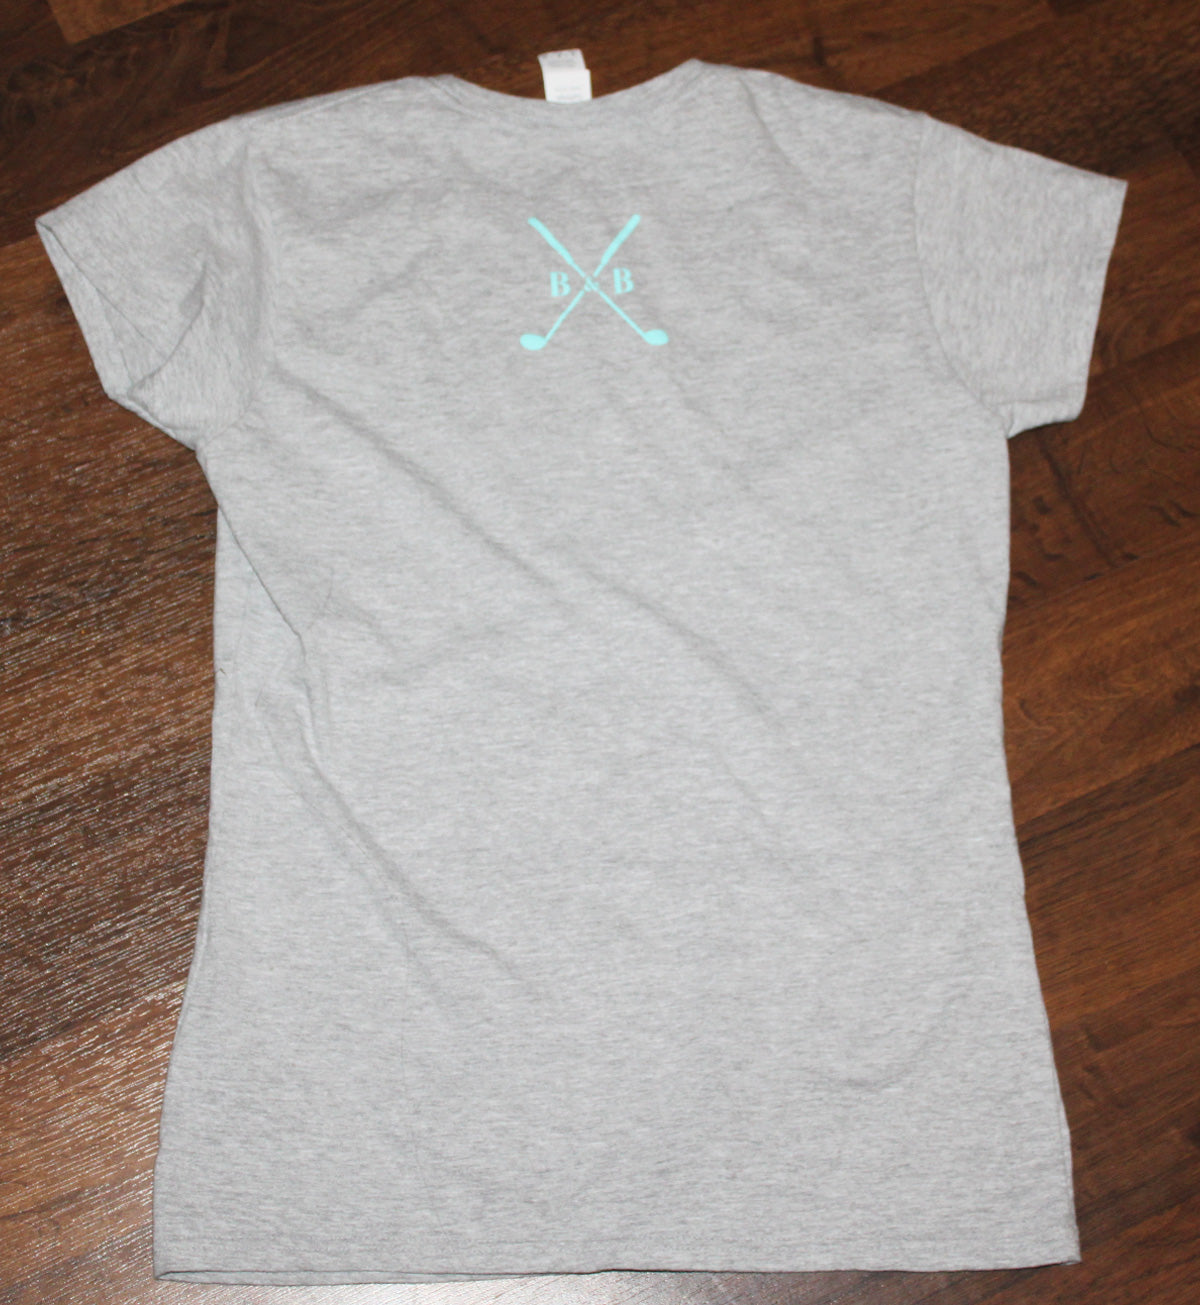 Ladies' Signature Tee - Barbells & Birdies